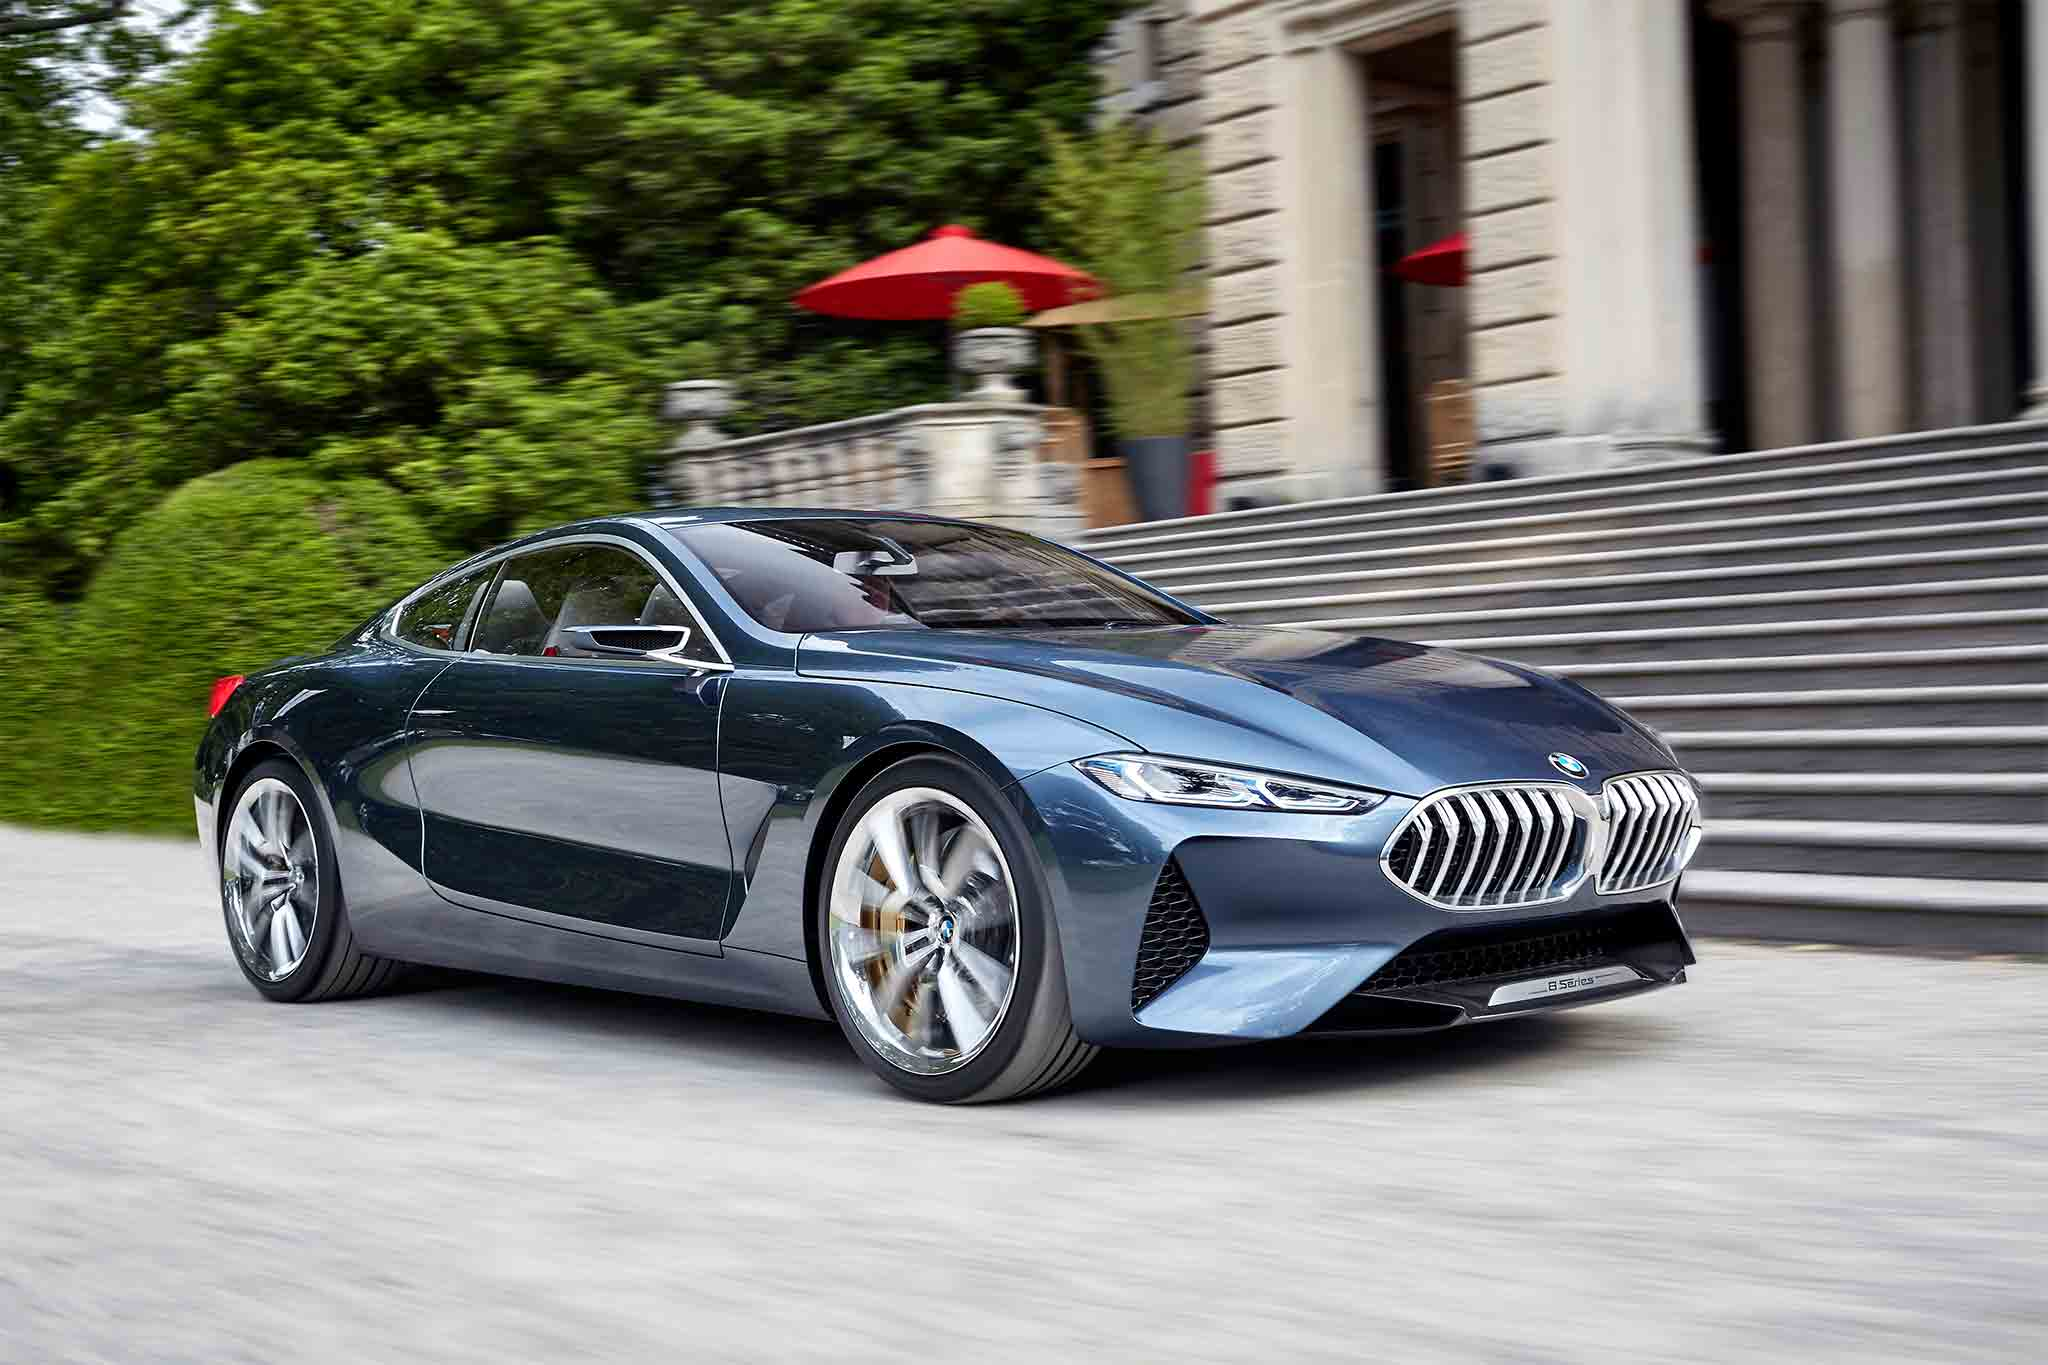 74 Great 2020 Bmw 8 Series Price Speed Test by 2020 Bmw 8 Series Price